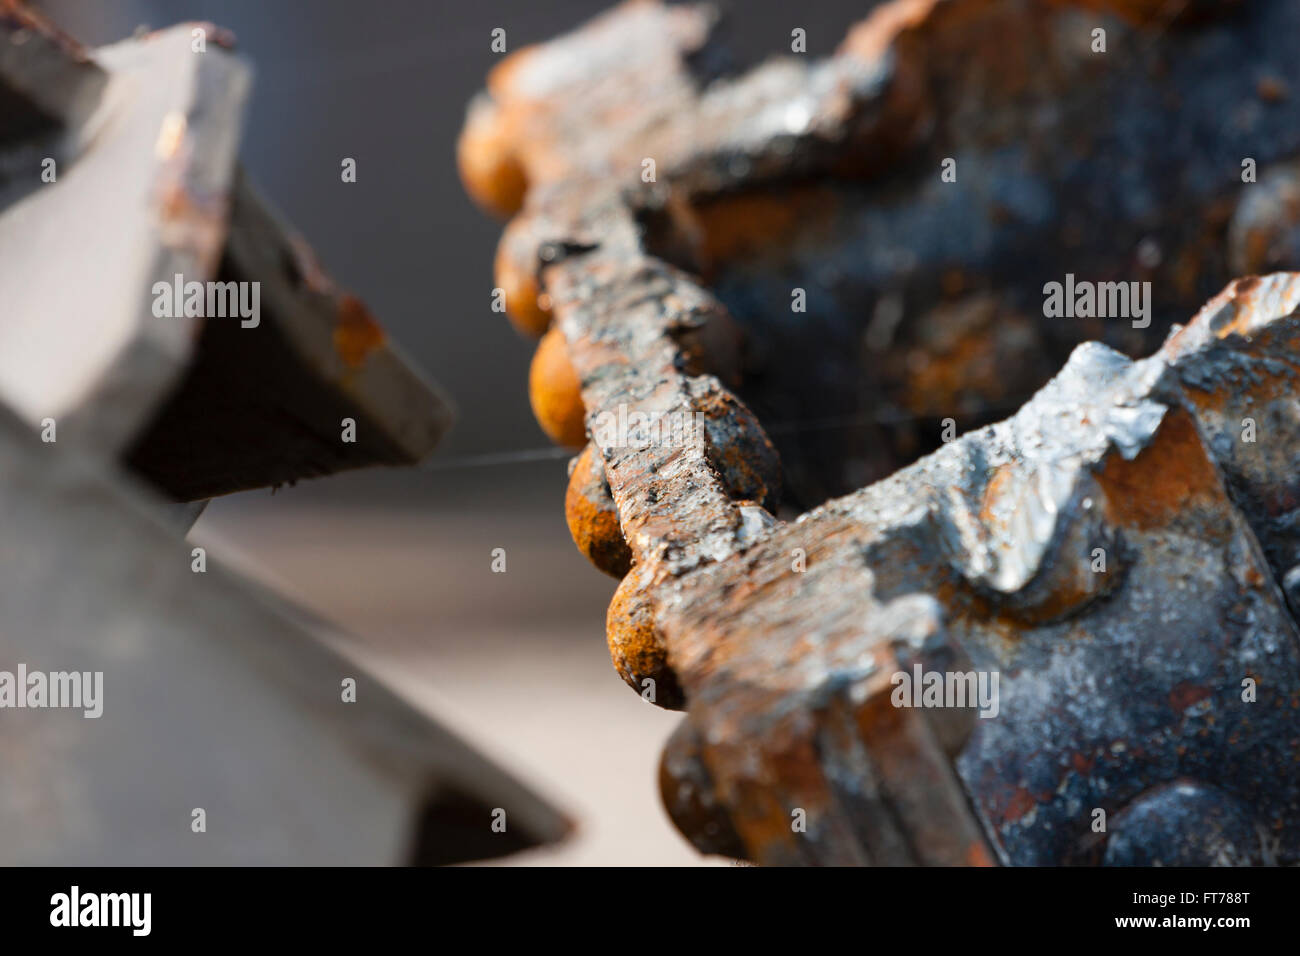 Detail shot of cut rusty steel beams from an old bridge. - Stock Image